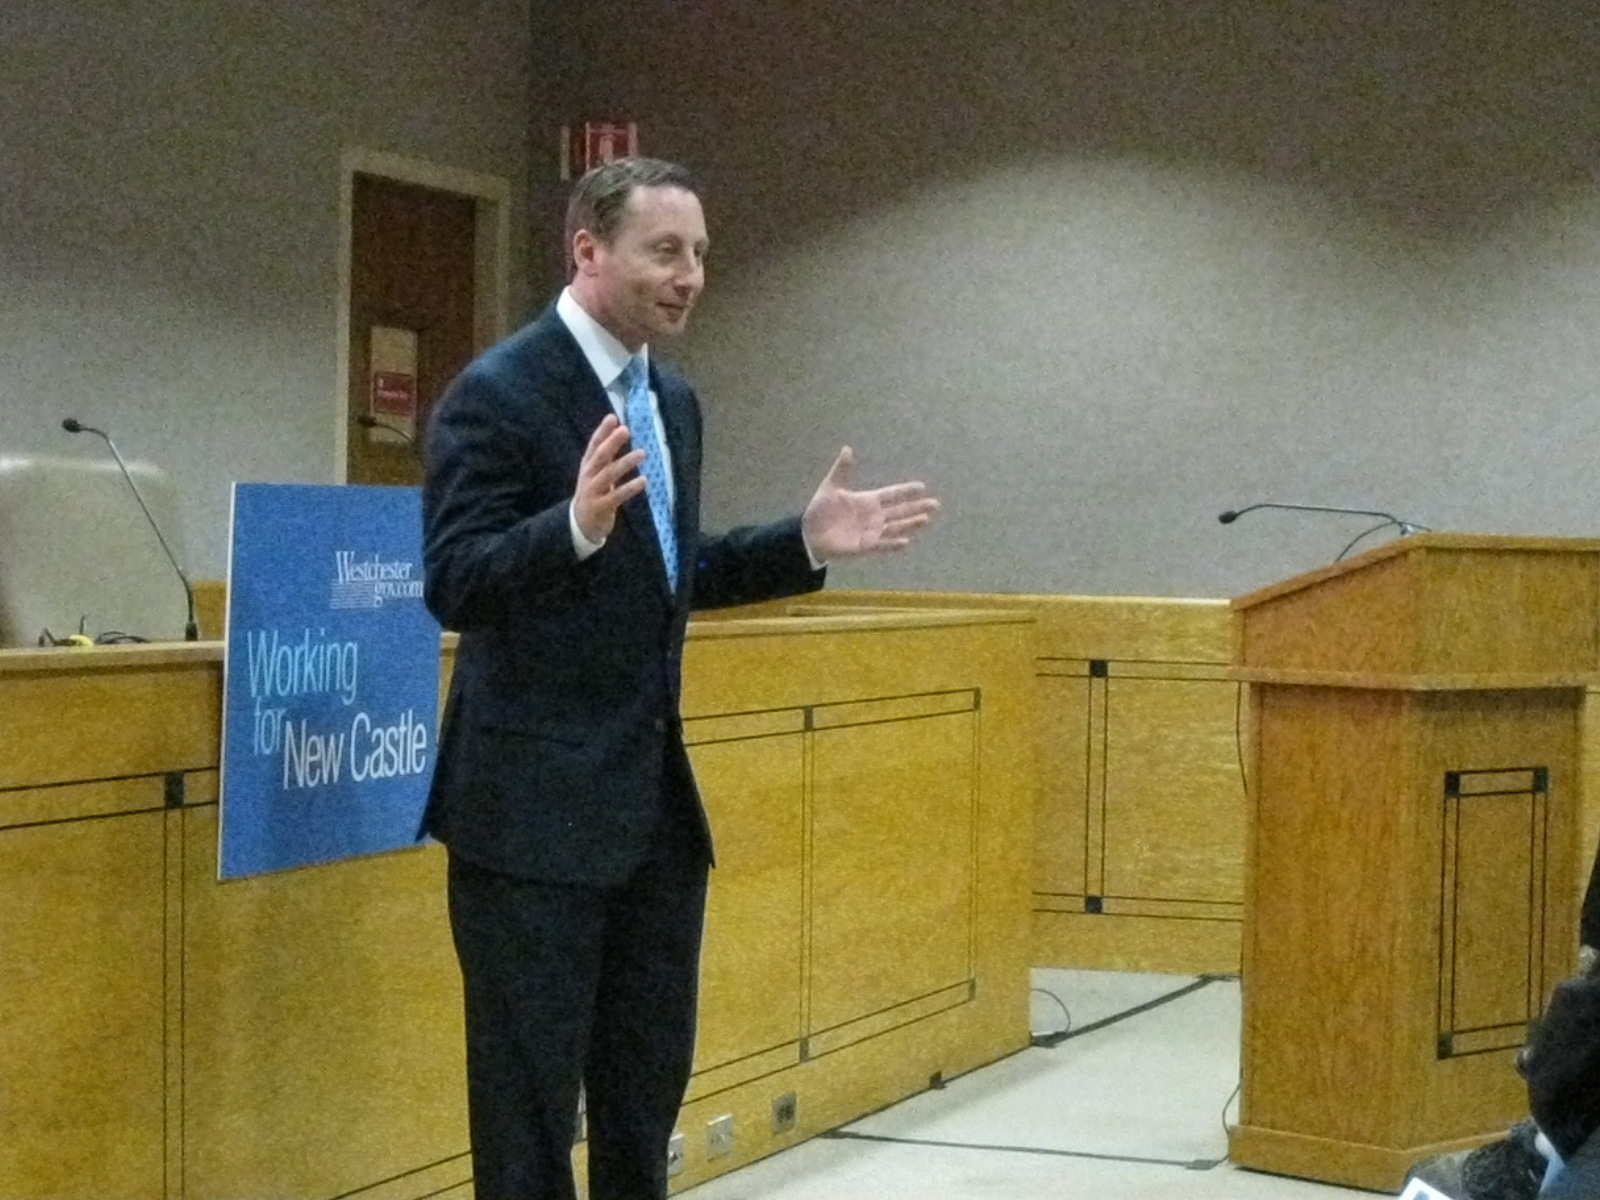 Westchester County has a lawsuit in federal court Friday to try to block the Department of Housing and Urban Development from reallocating $7.4 million in federal funds.